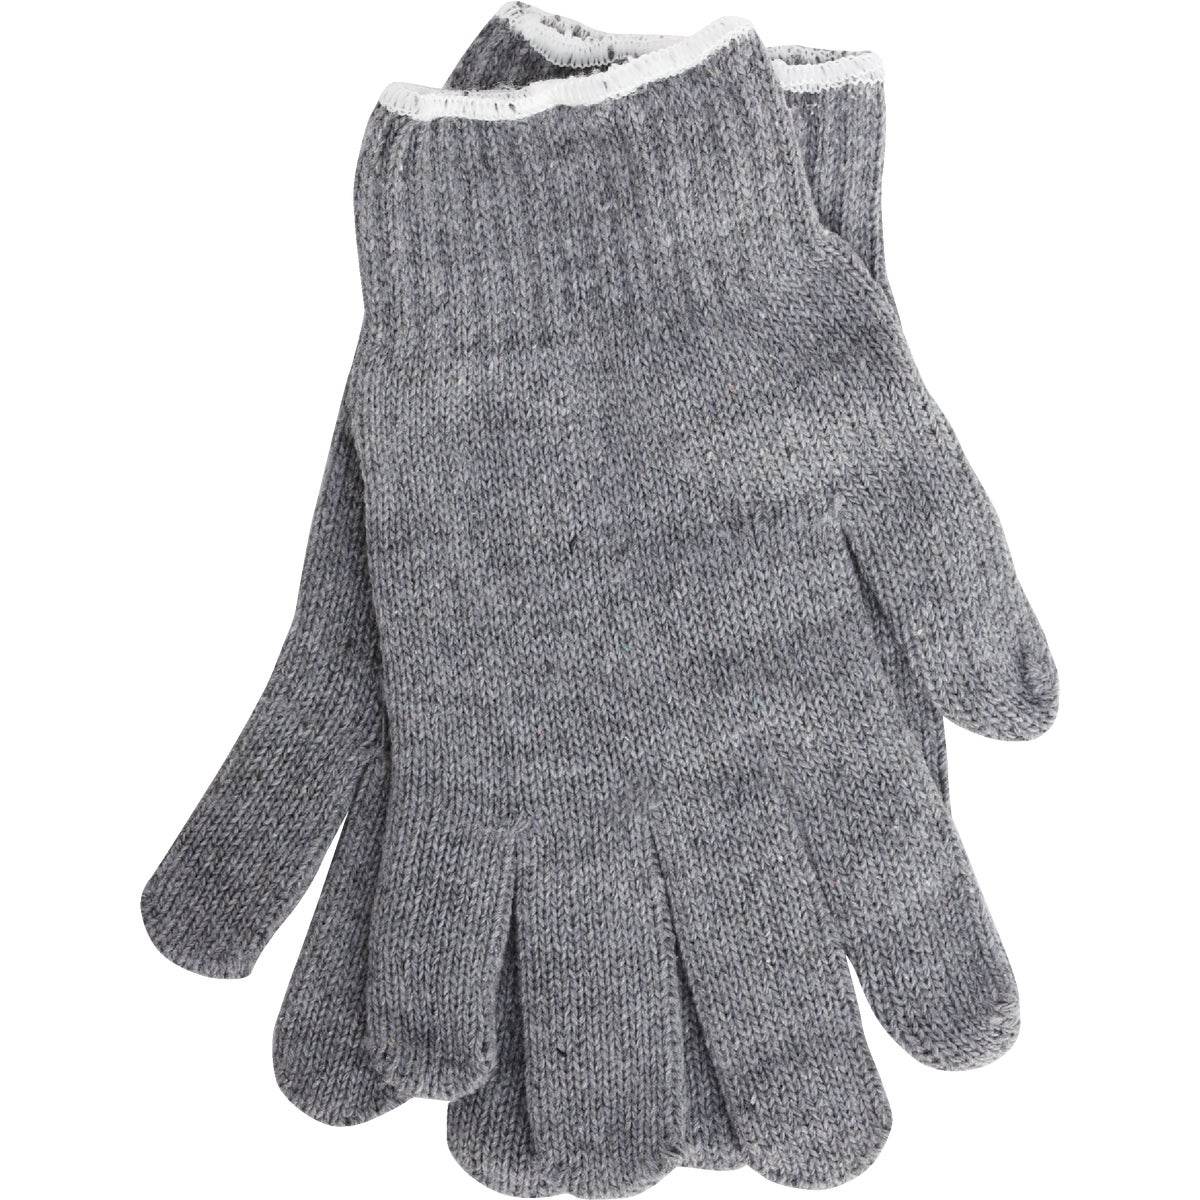 ACRY-POLY KNIT GLOVE